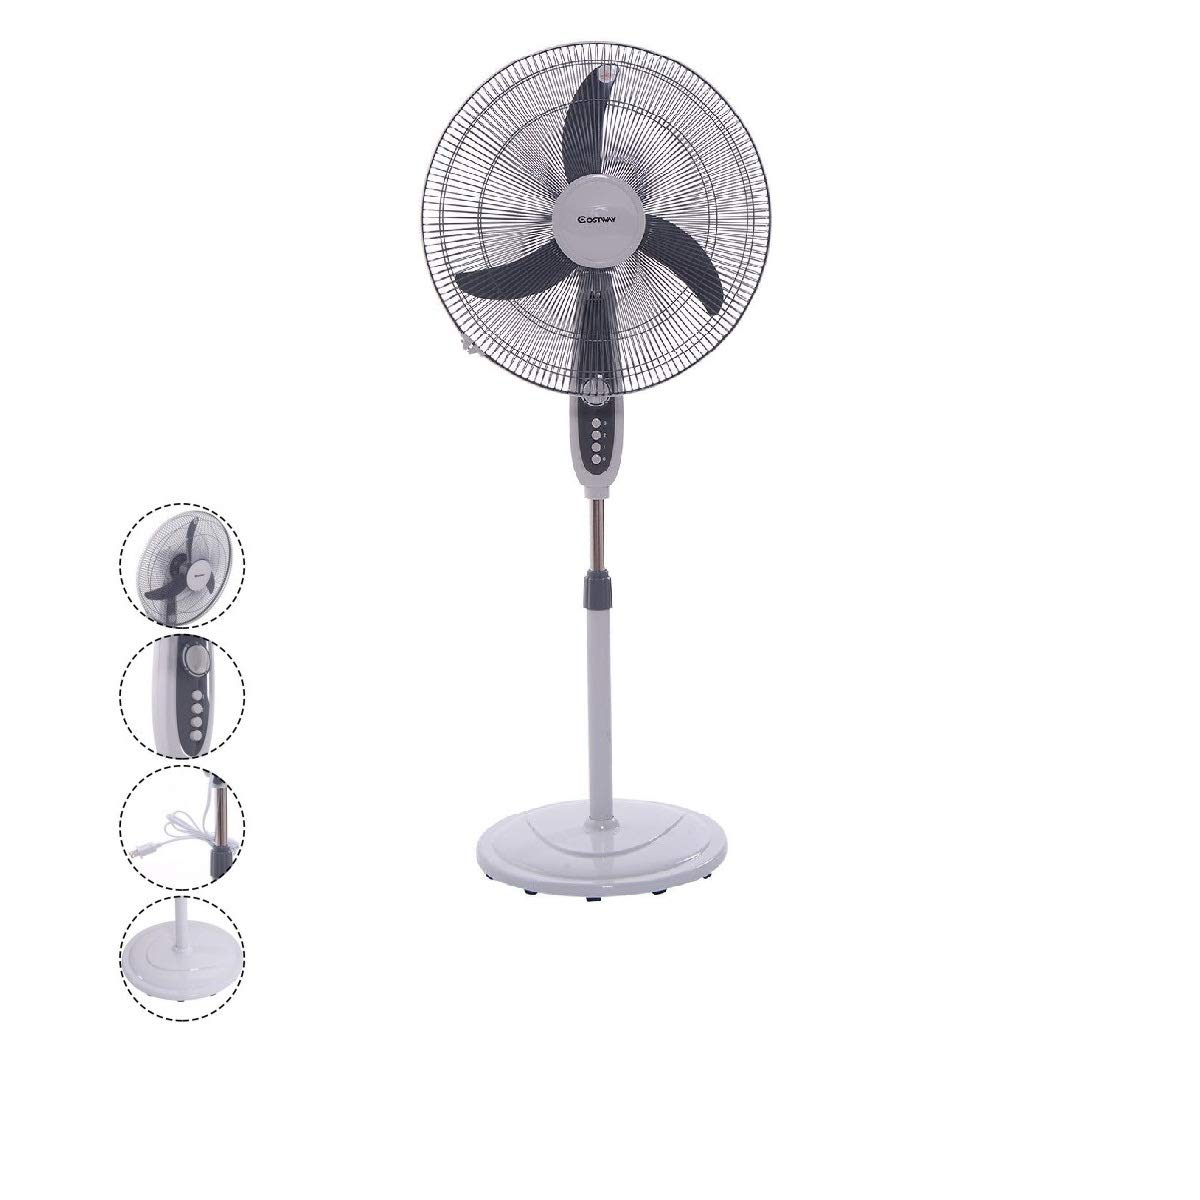 NEW Oscillating Standing Floor Fan Pedestal Powerful Electric Large 18 Inch.Quiet 3 Speed Ideal For Bedroom Living Room Office Home.High Velocity Cold Air Flow Cooler Adjustable Angle Auto Shut Off.HQ